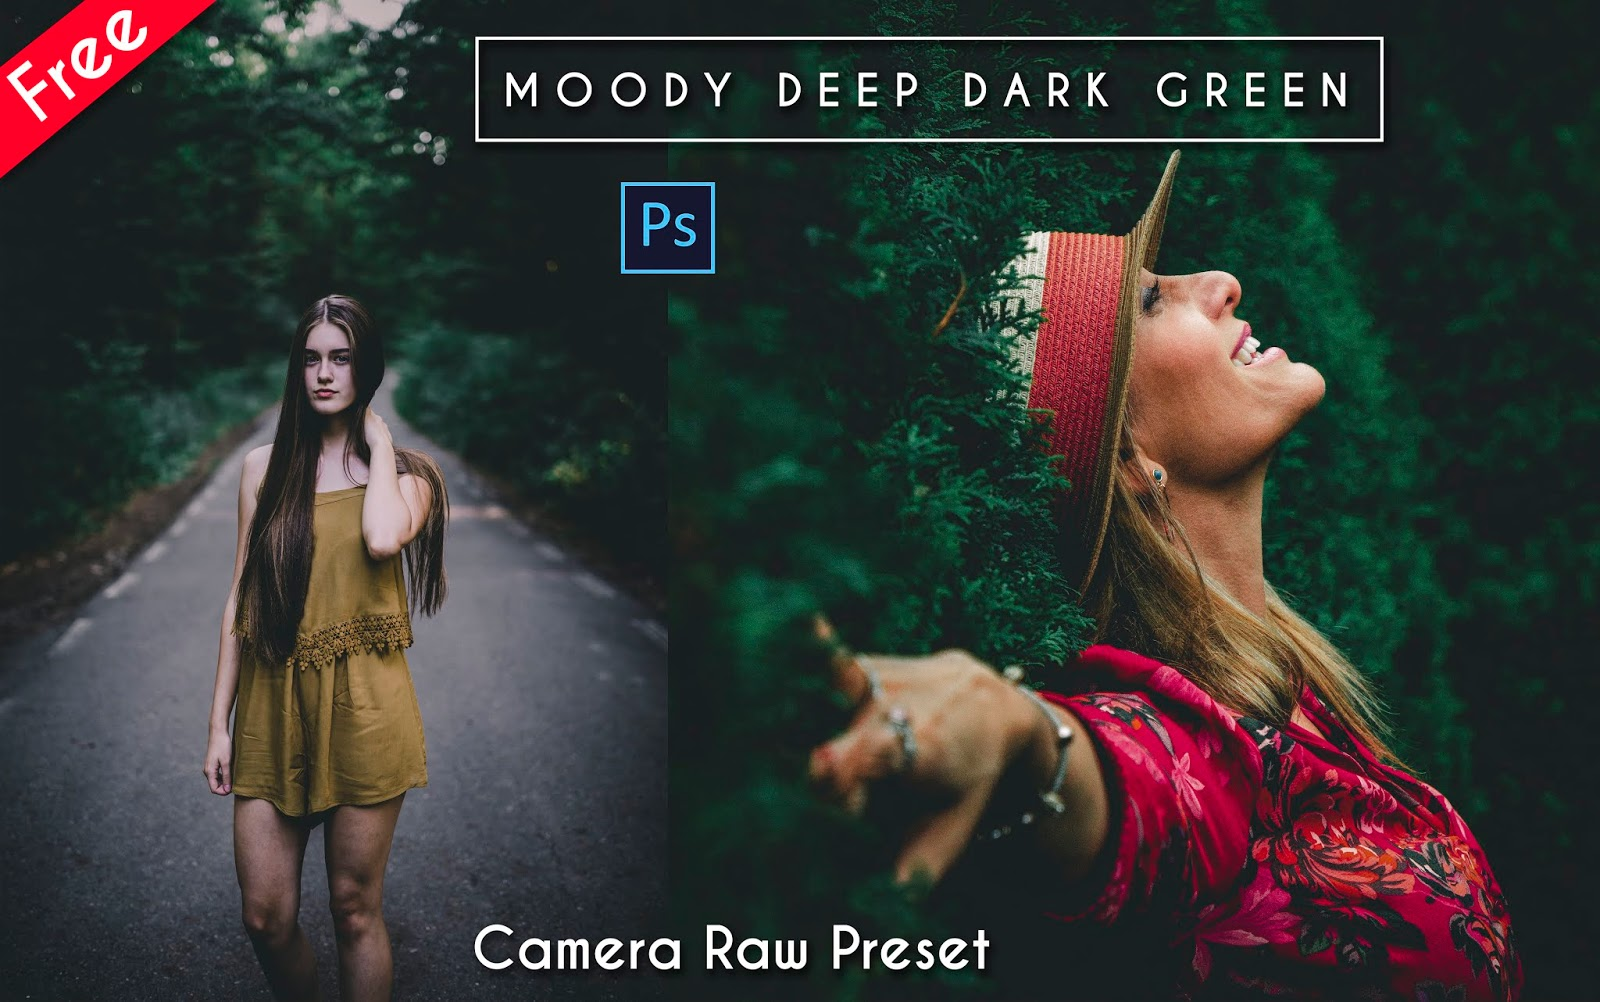 Download Moody Deep Dark Green Camera Raw Preset for Free | How to Edit Your Photos Like Moody Deep Dark Green  Effect in Photoshop